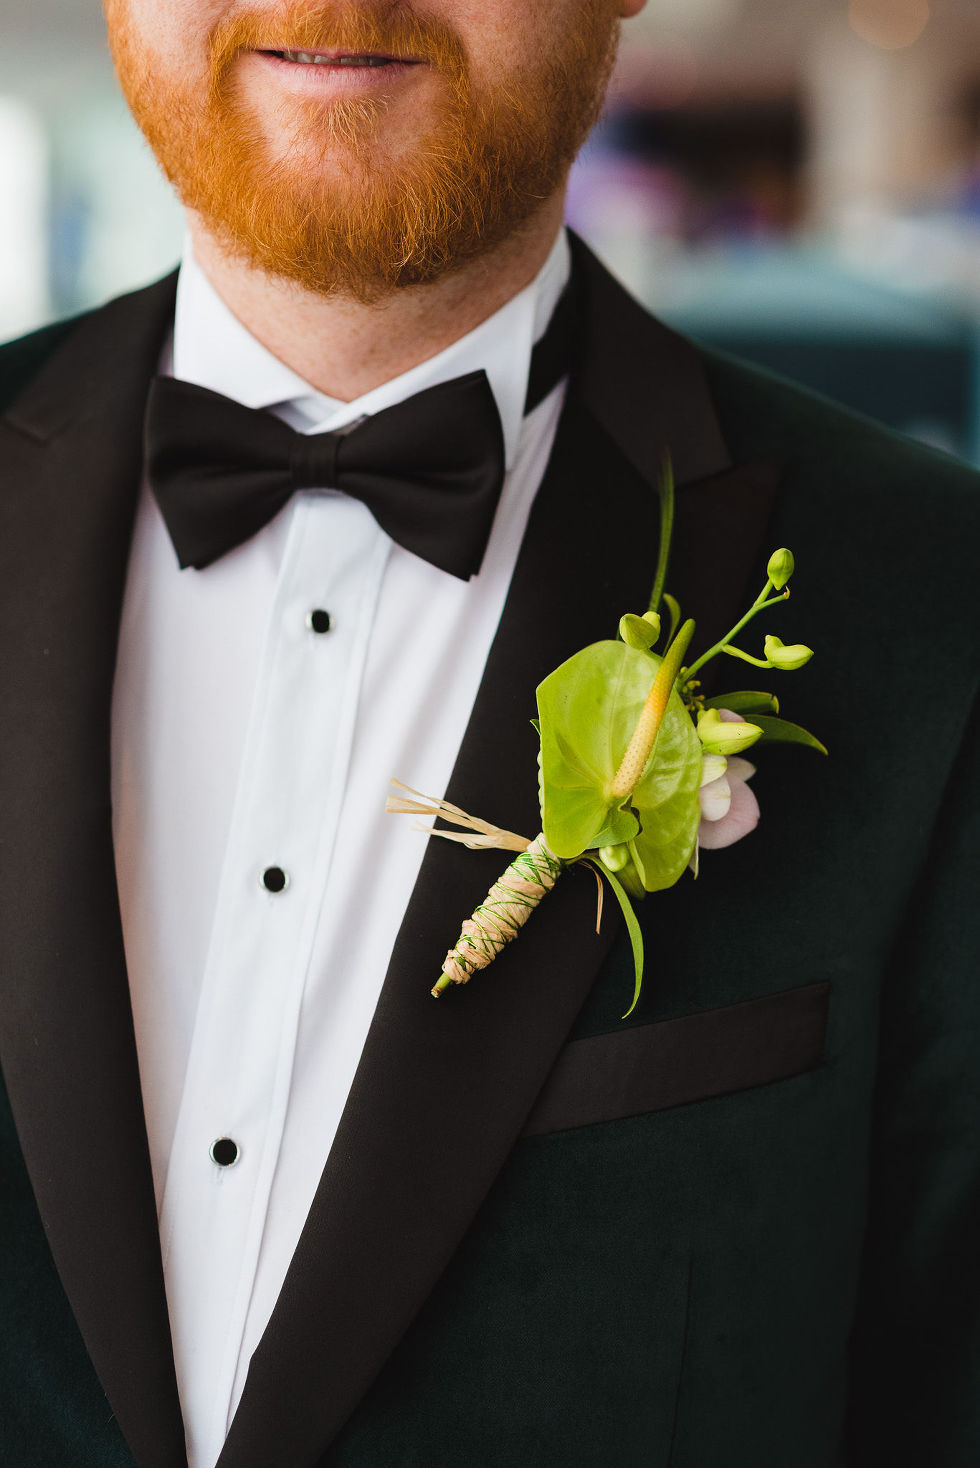 groom in a green suit and dark bowtie with a green boutonniere on his lapel before his wedding at the Hilton hotel in Niagara Falls